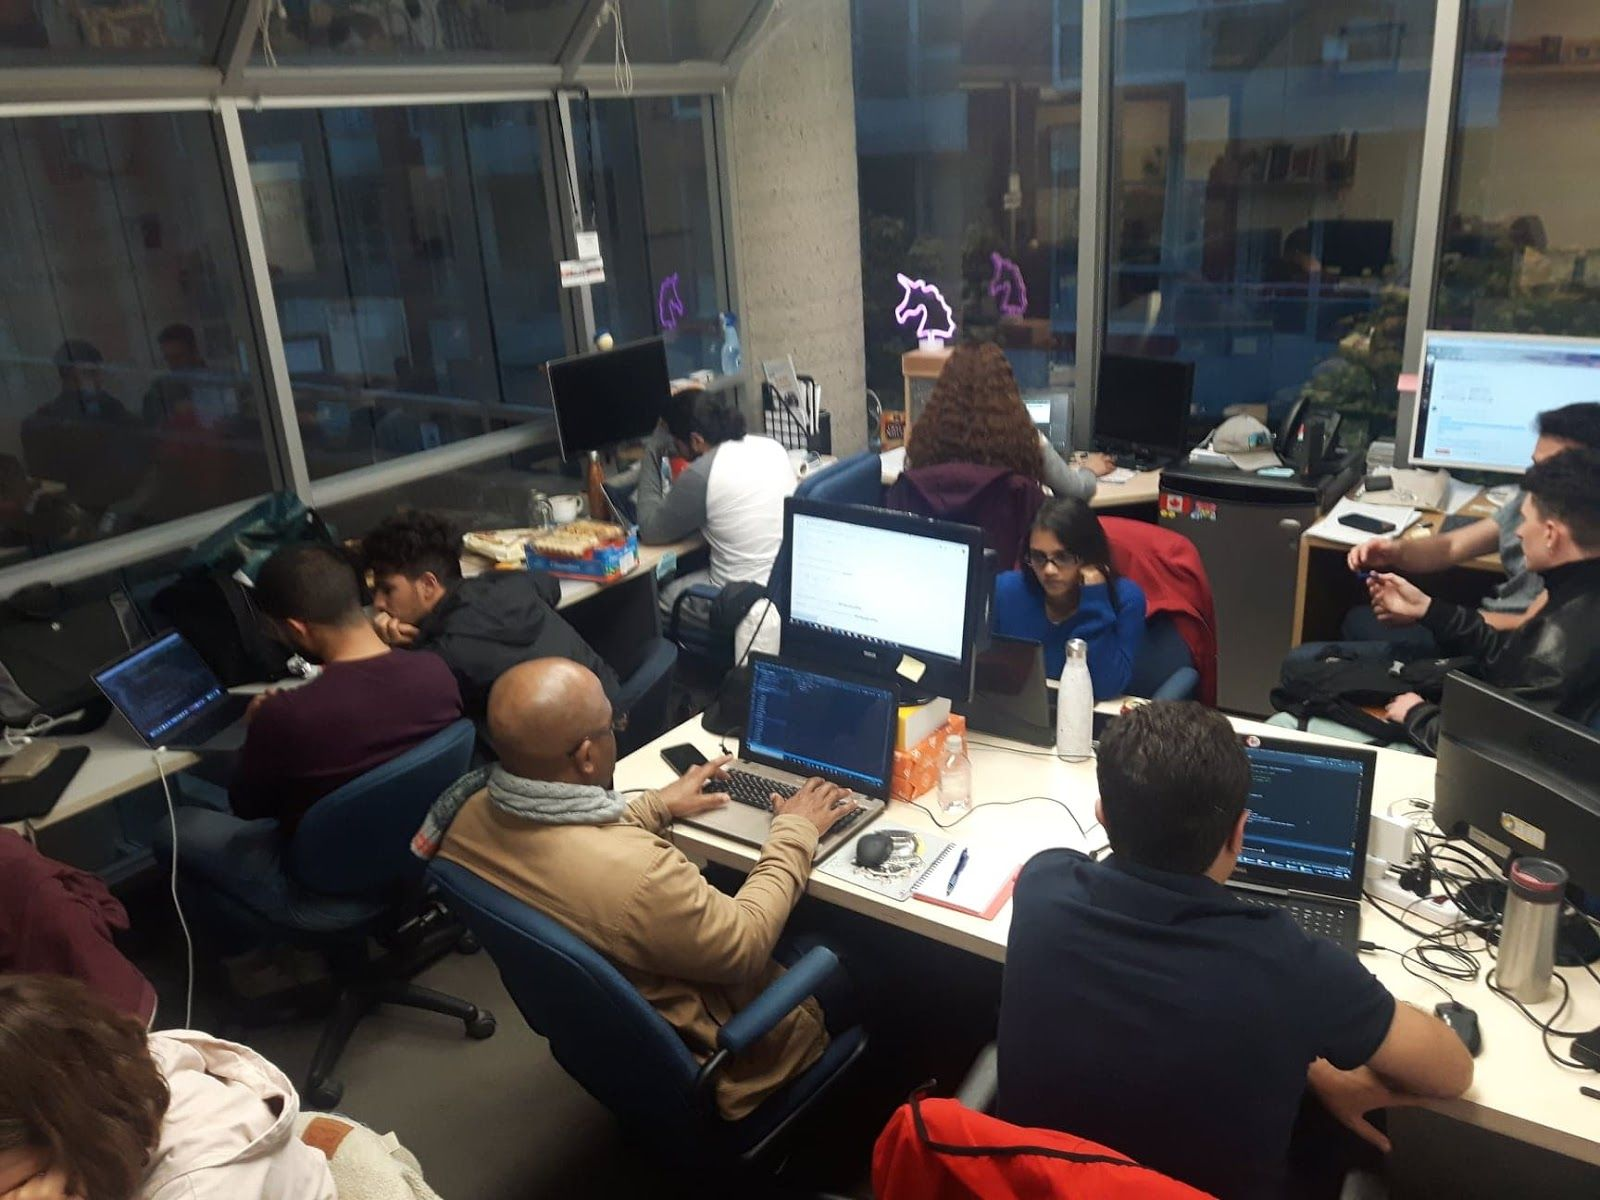 A very very crowded office with the GRAD4 team